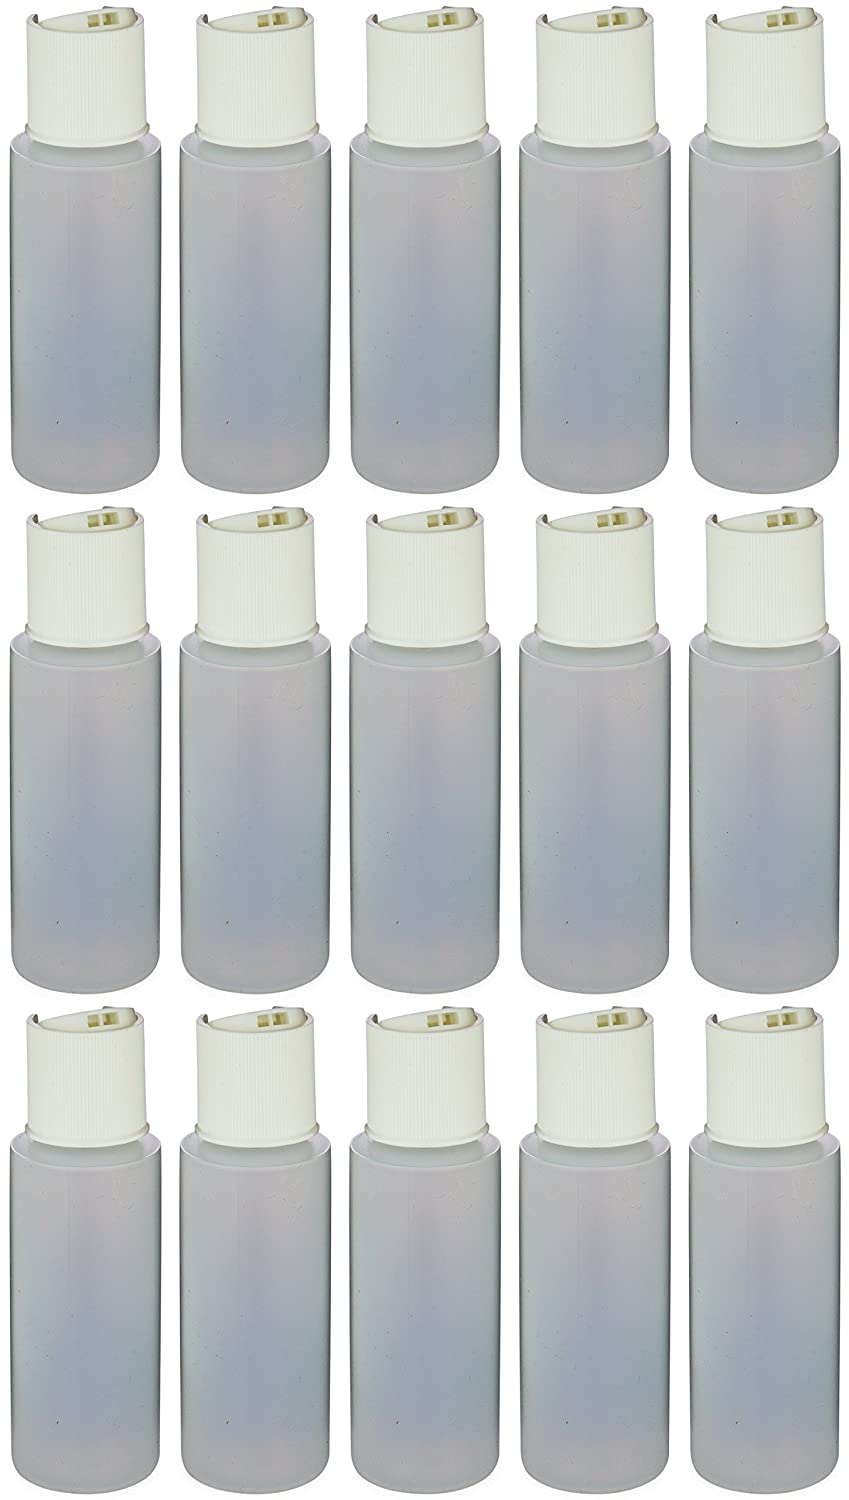 Earth s Essentials Pack Of Fifteen Travel Size Refillable 2.5 Oz. Squeeze Bottles With One Hand Press Cap Dispenser Tops. Great for Dispensing Lotions, Shampoos and Massage Oils.